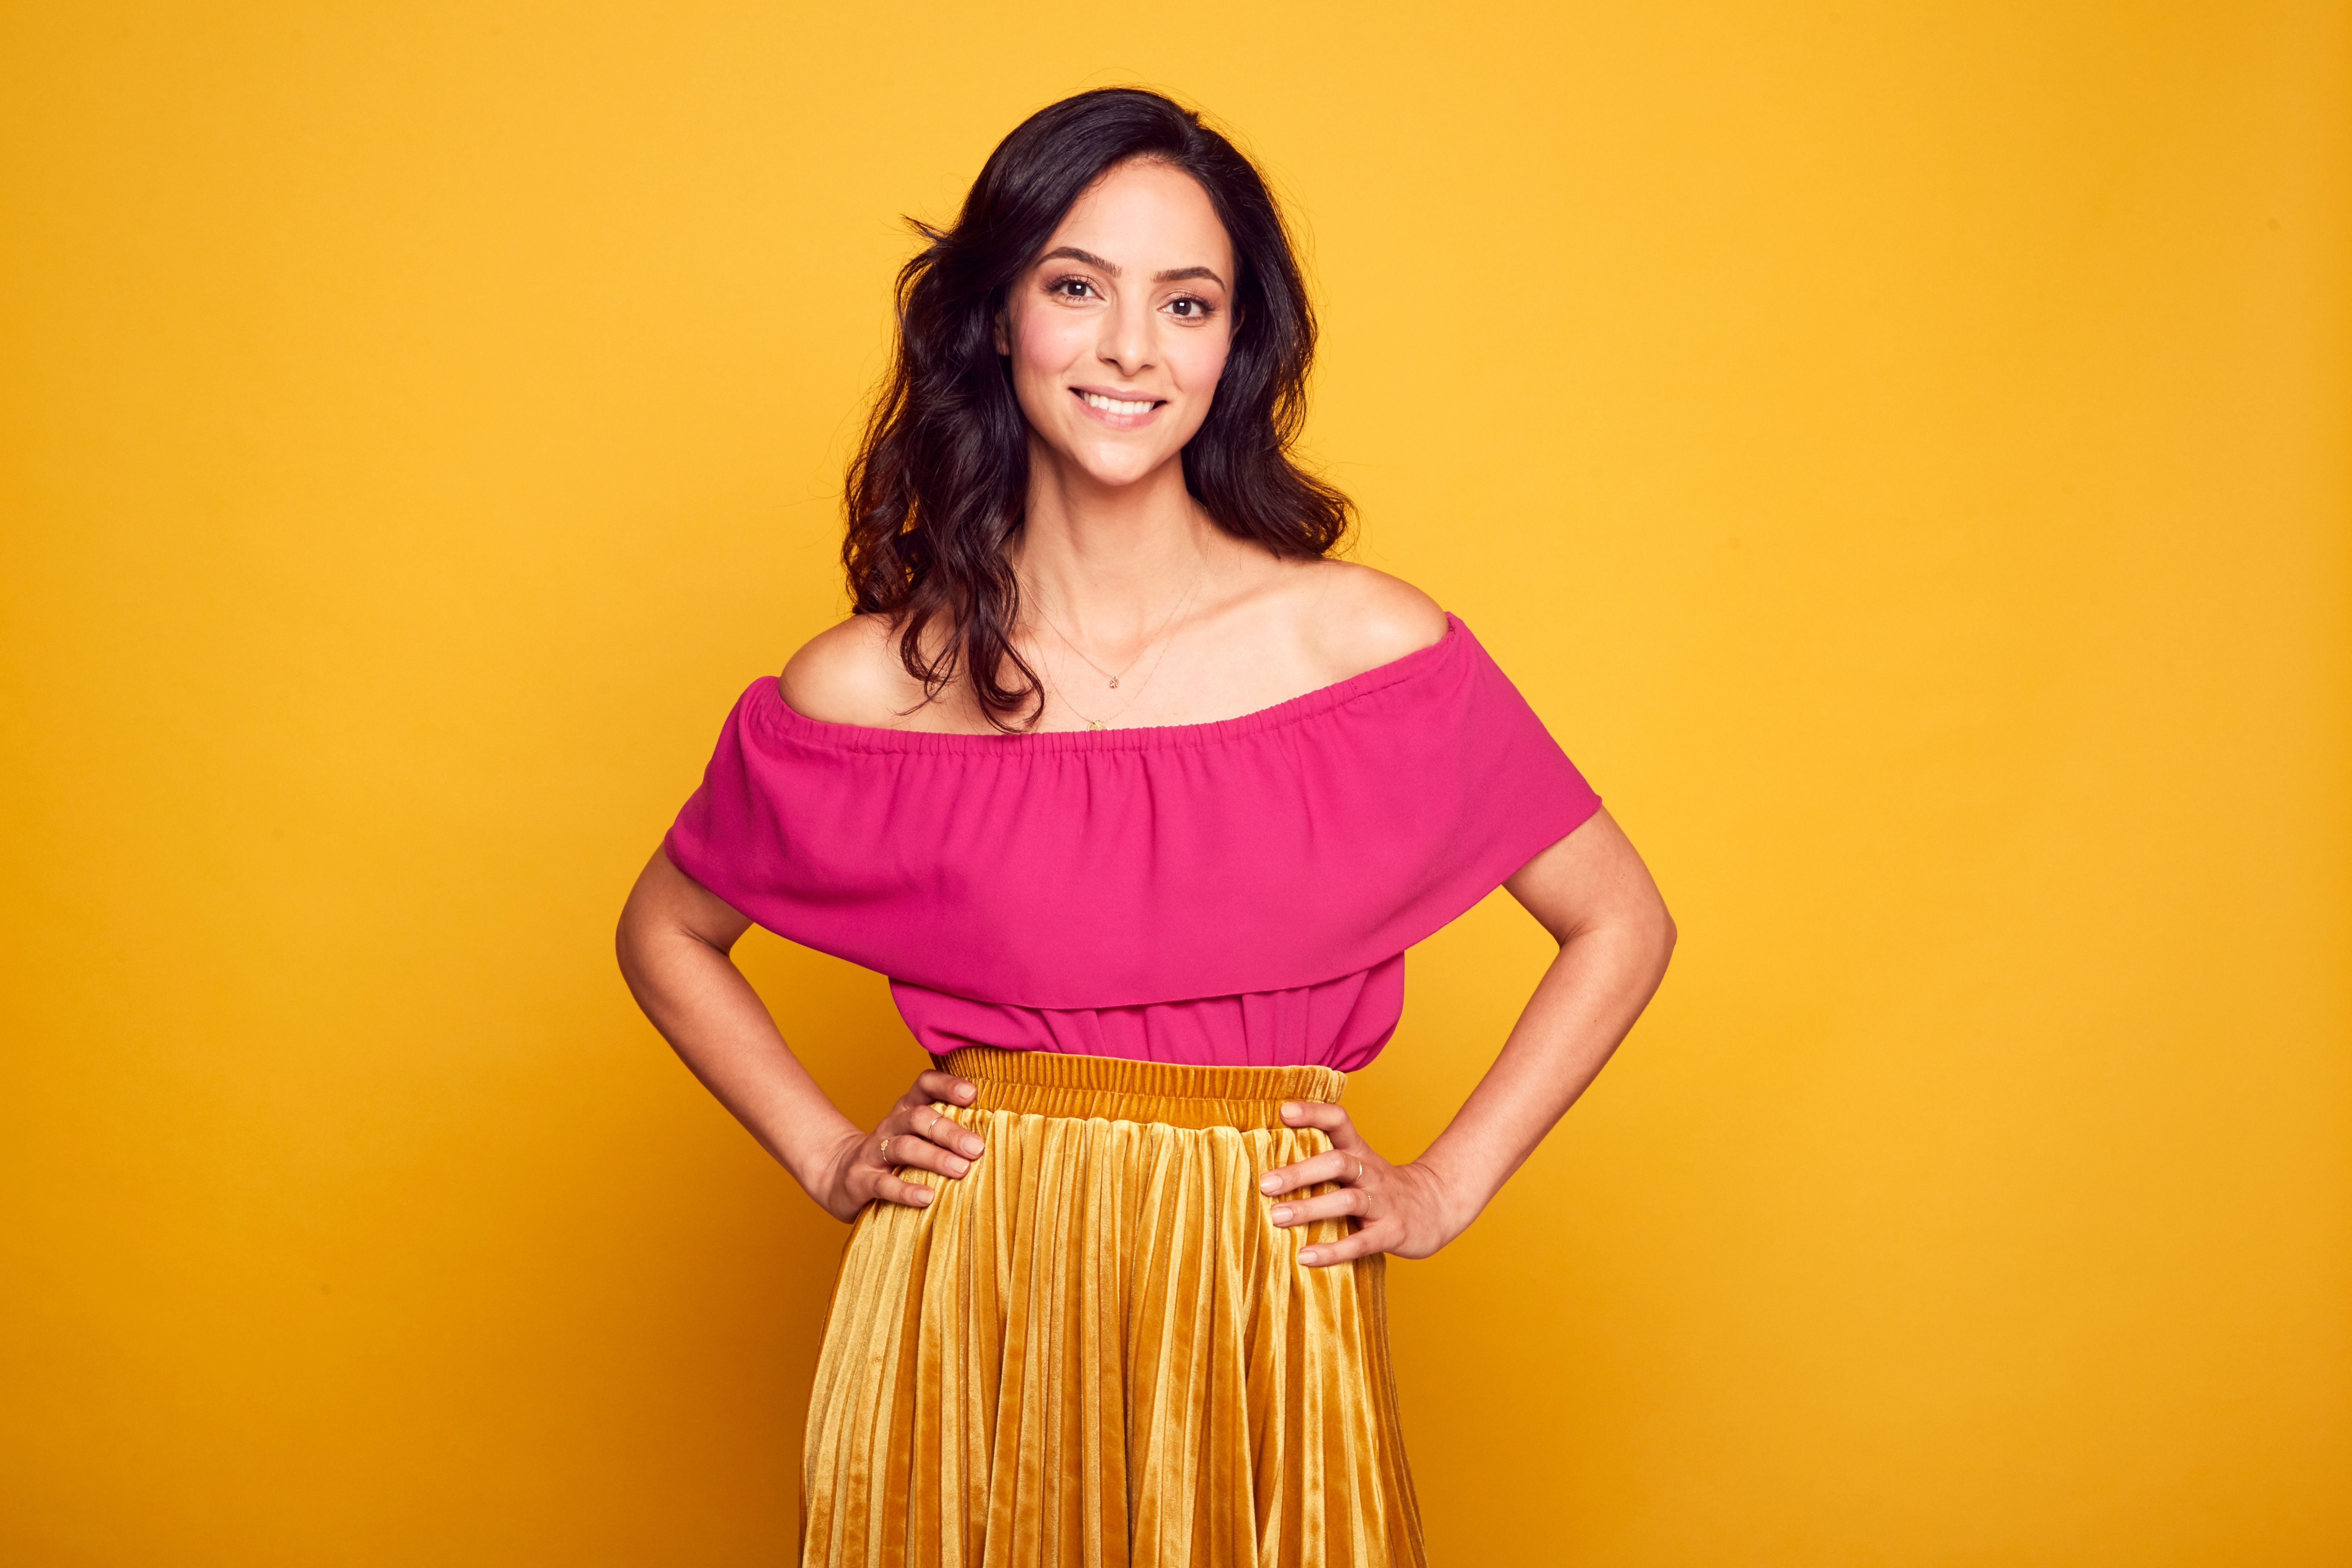 BEVERLY HILLS, CA - AUGUST 02:  Actor Tala Ashe of CW's 'DC's Legends of Tomorrow' poses for a portrait during the 2017 Summer Television Critics Association Press Tour at The Beverly Hilton Hotel on August 2, 2017 in Beverly Hills, California.  (Photo by Benjo Arwas/Getty Images)